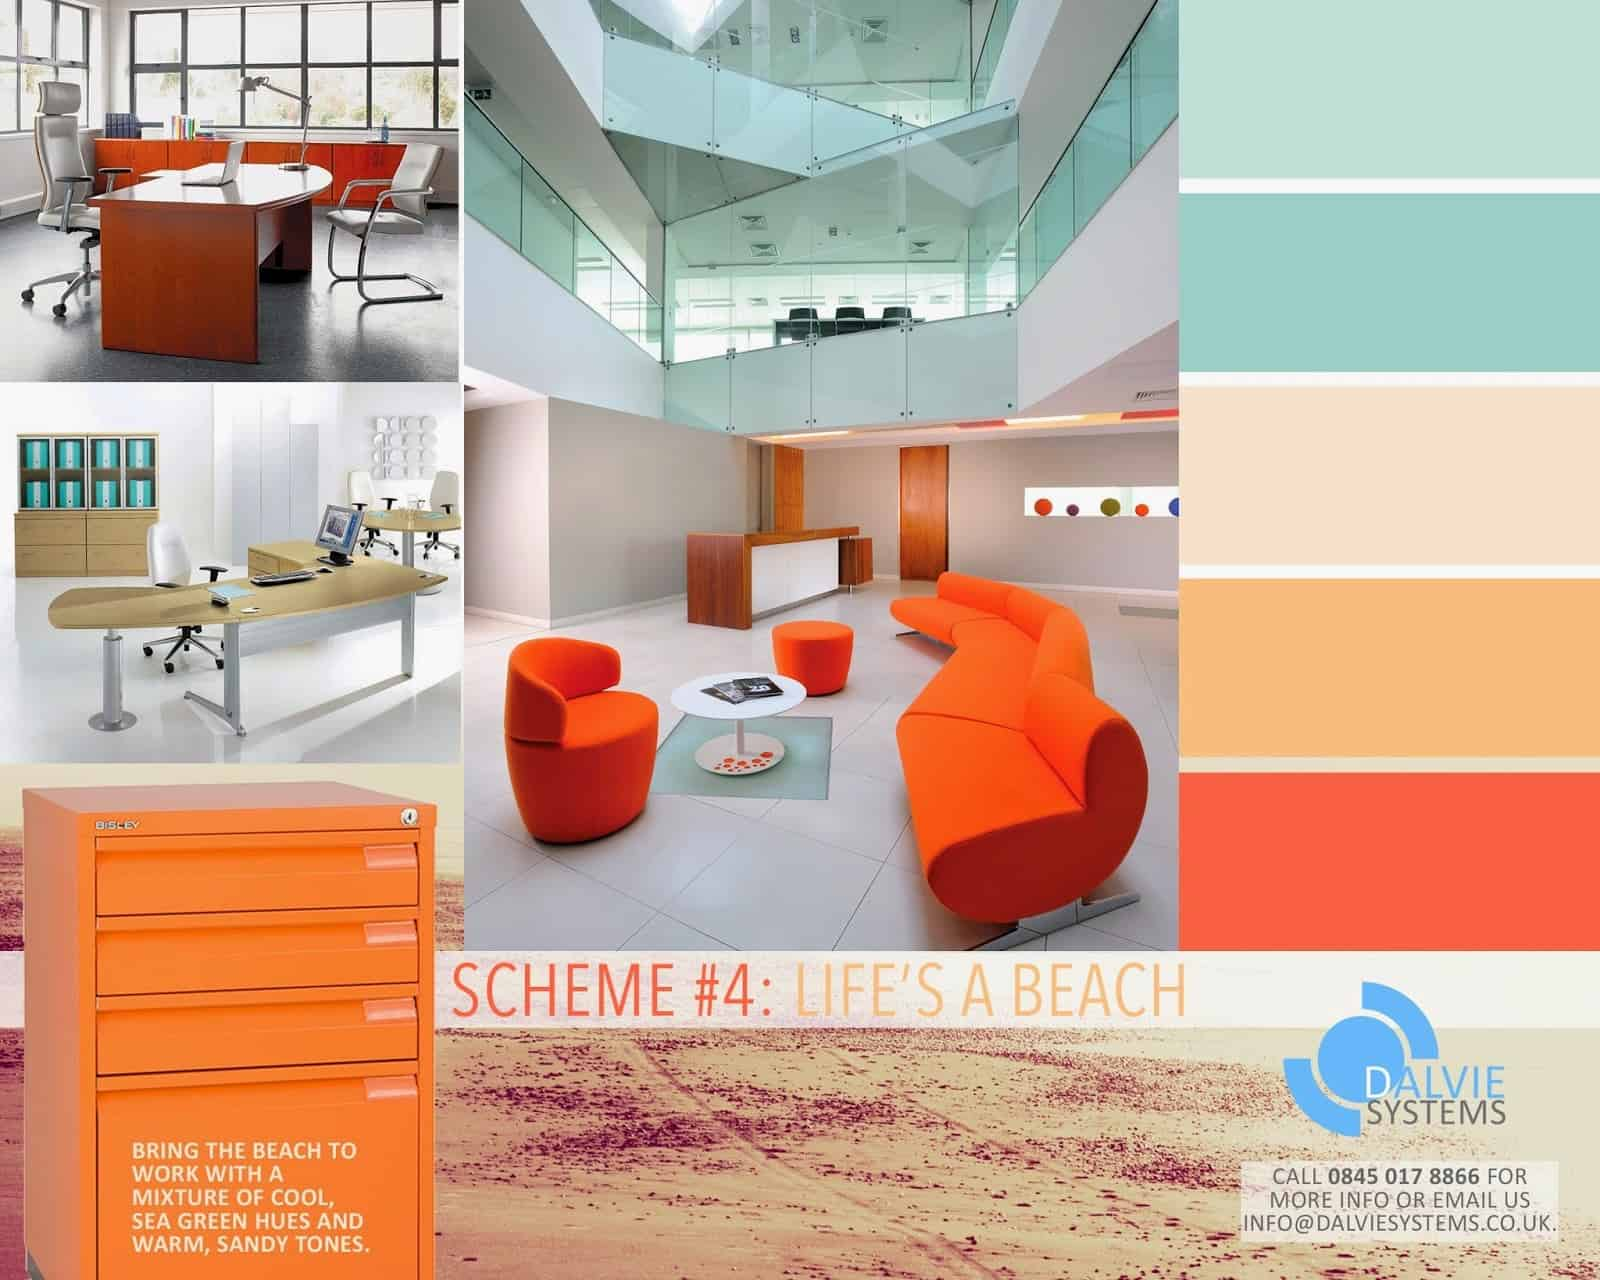 #4 Life's A Beach inspired by Dalvie Systems